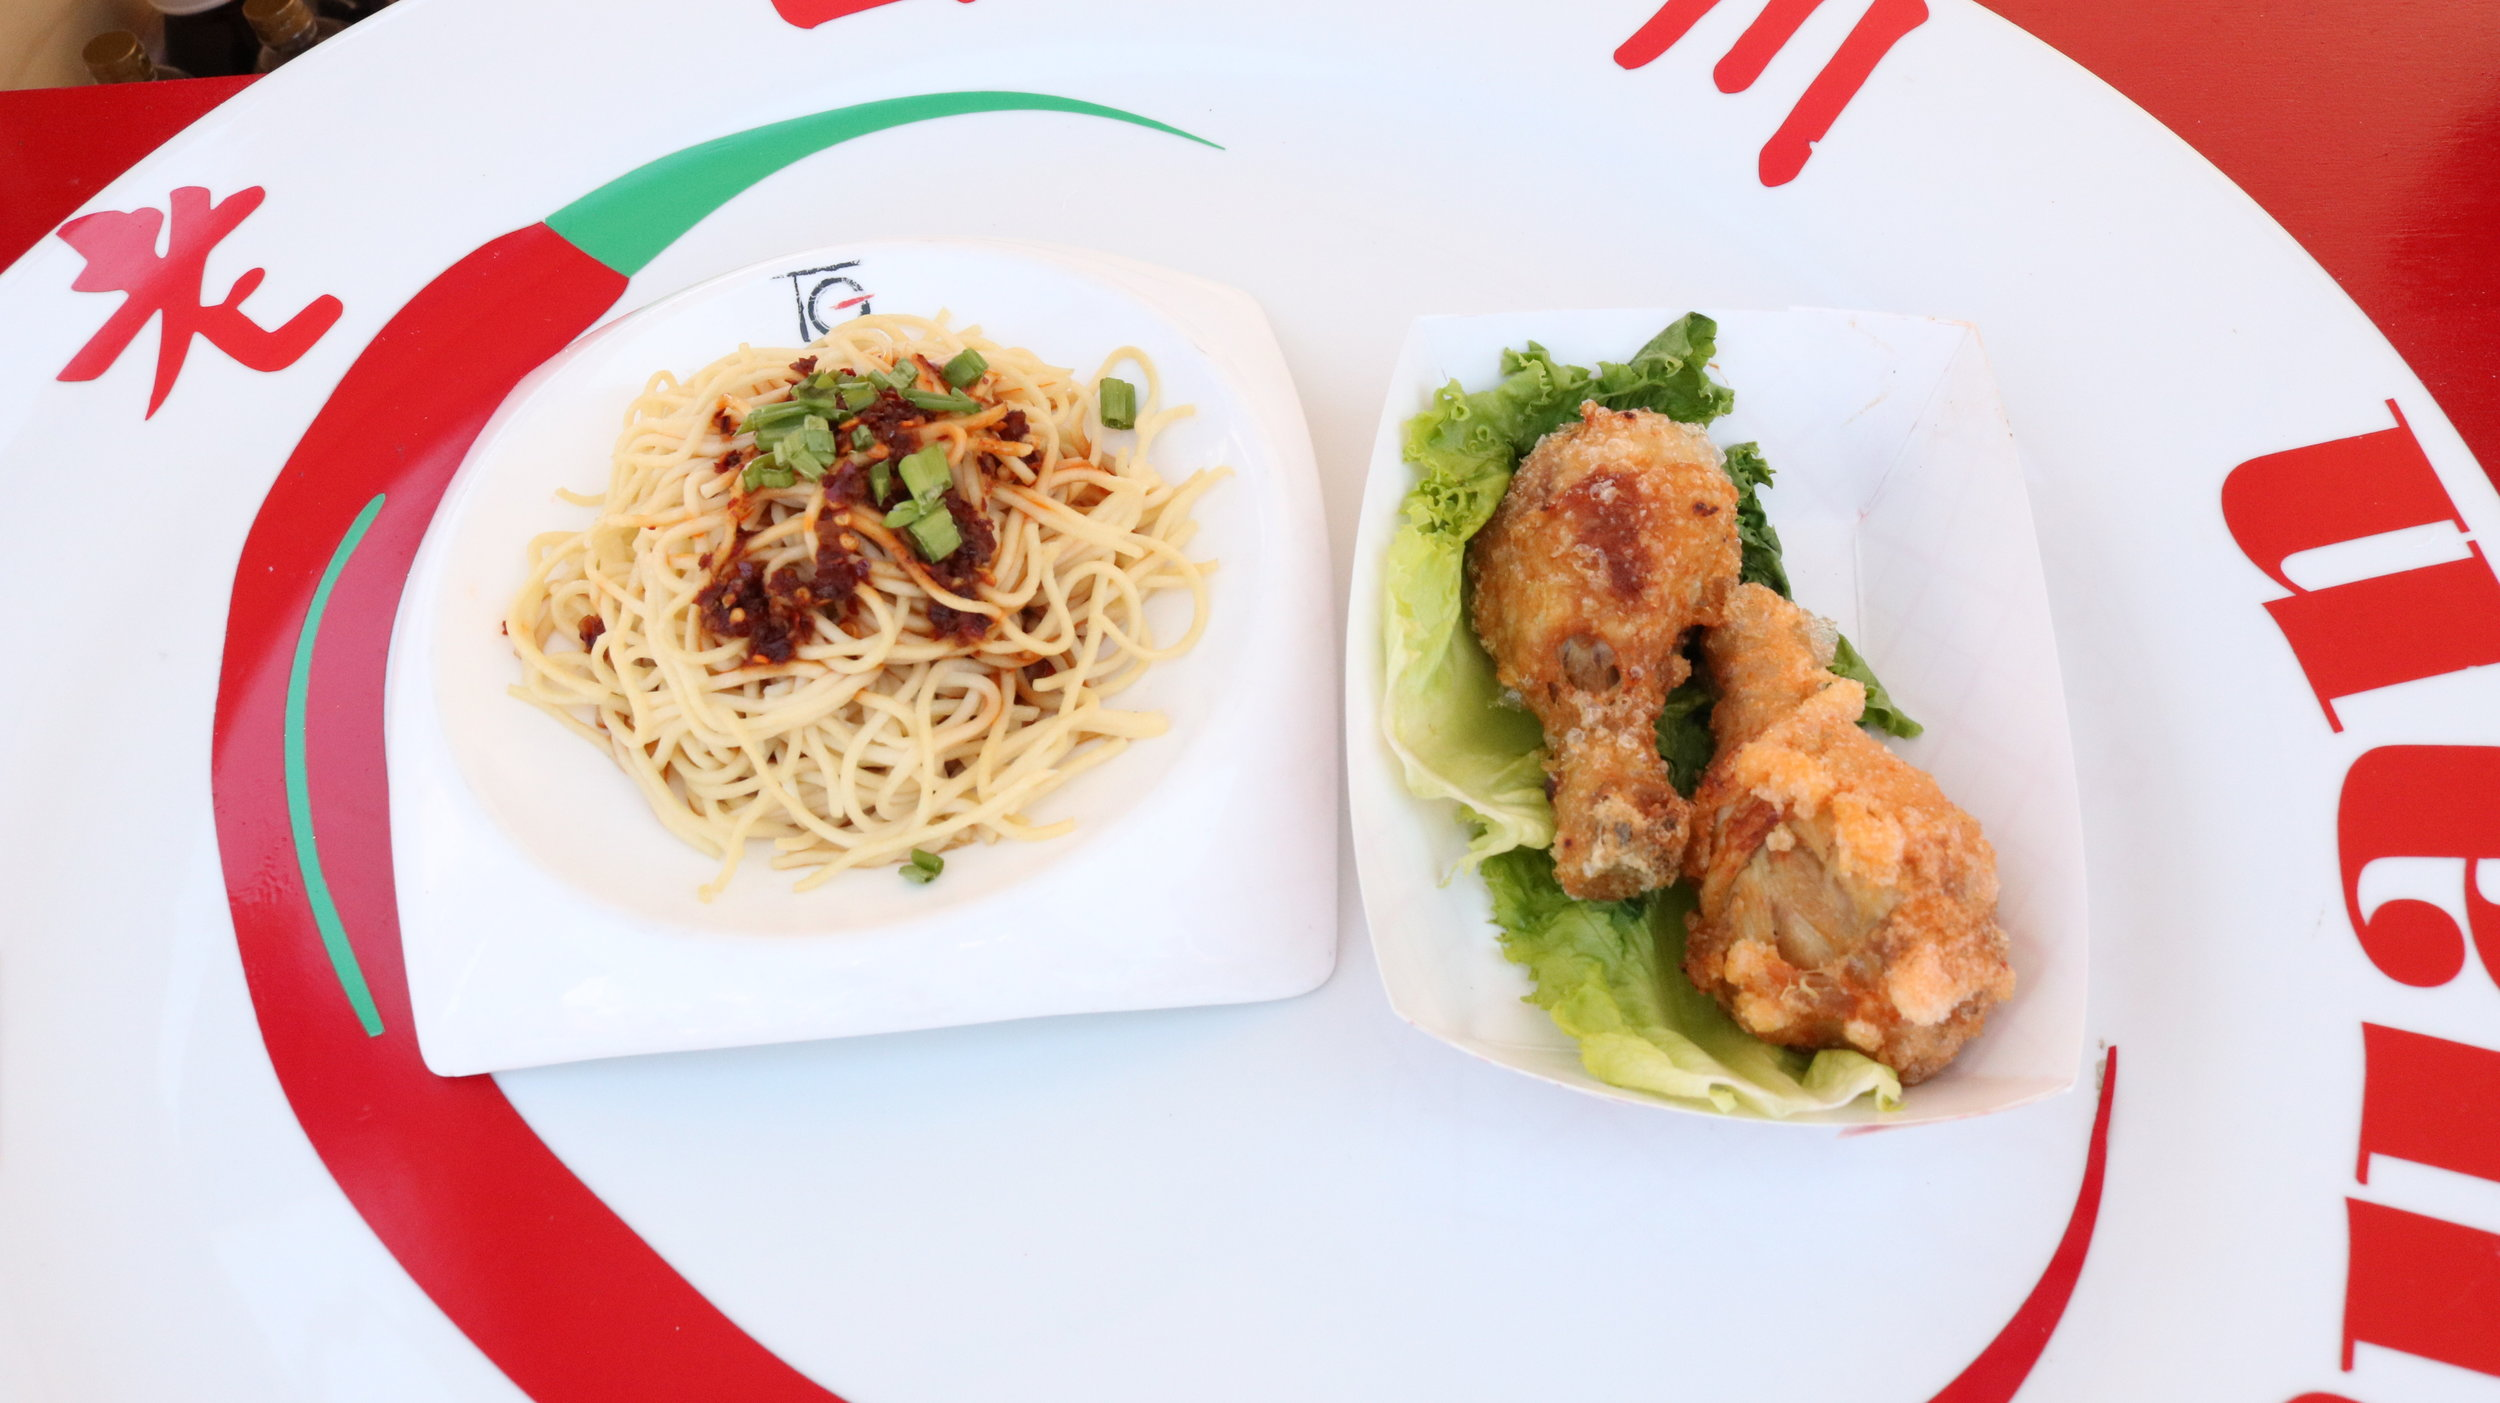 Lao Sze Chuan, one of the Asian restaurants at the Taste of Chicago, displays Cold Noodle Salad and Szechuan Style Chicken. Photo by Clariza Adao